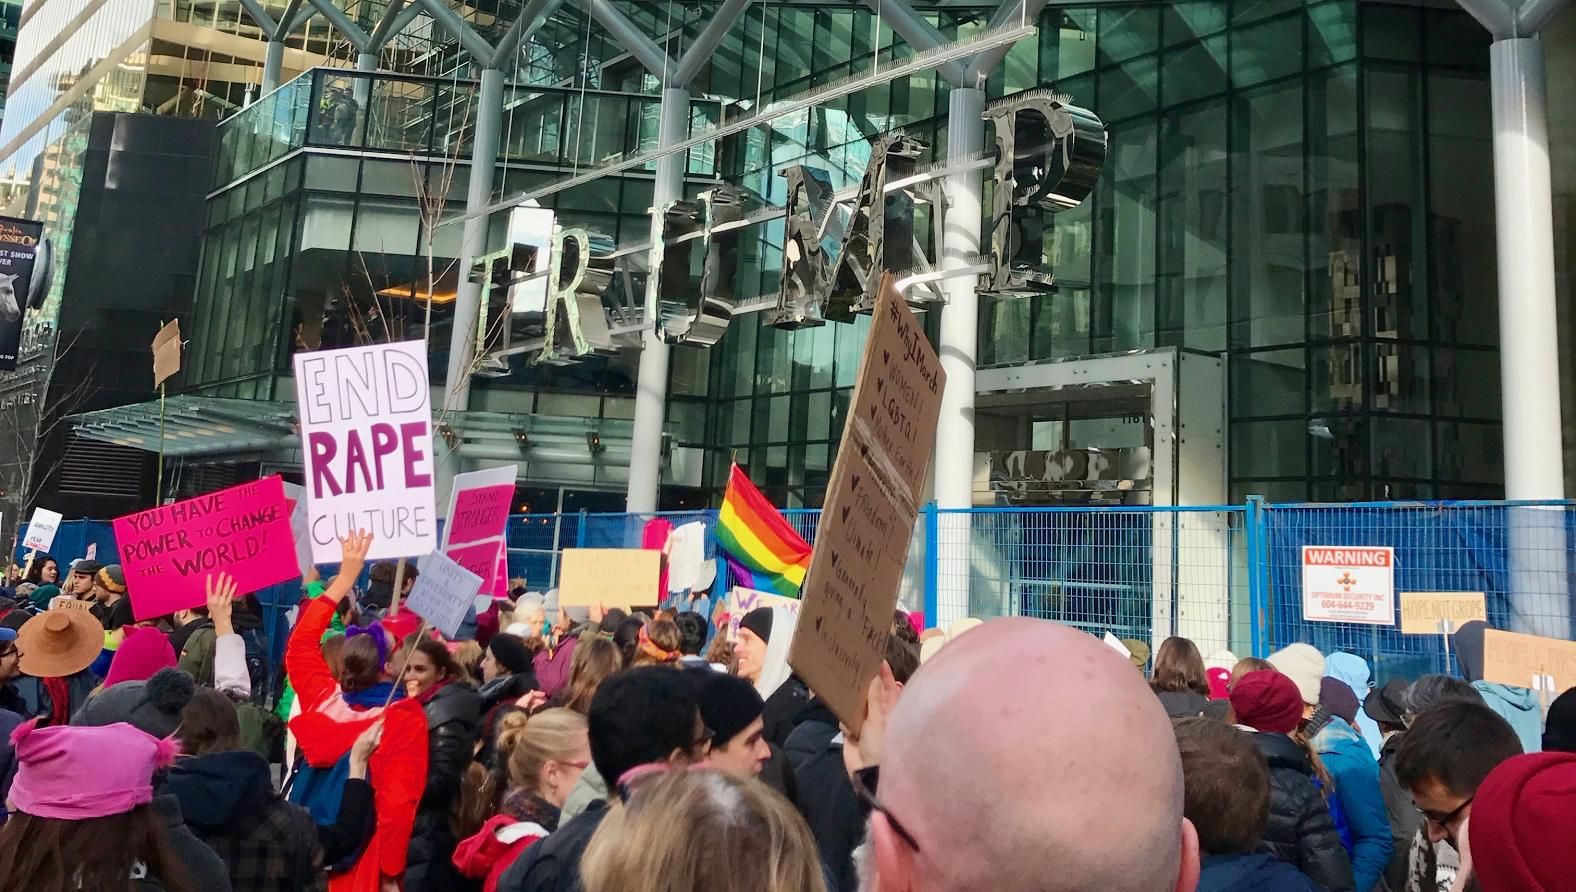 I took this photo at the new Trump Tower during the Vancouver Women's March on January 21.